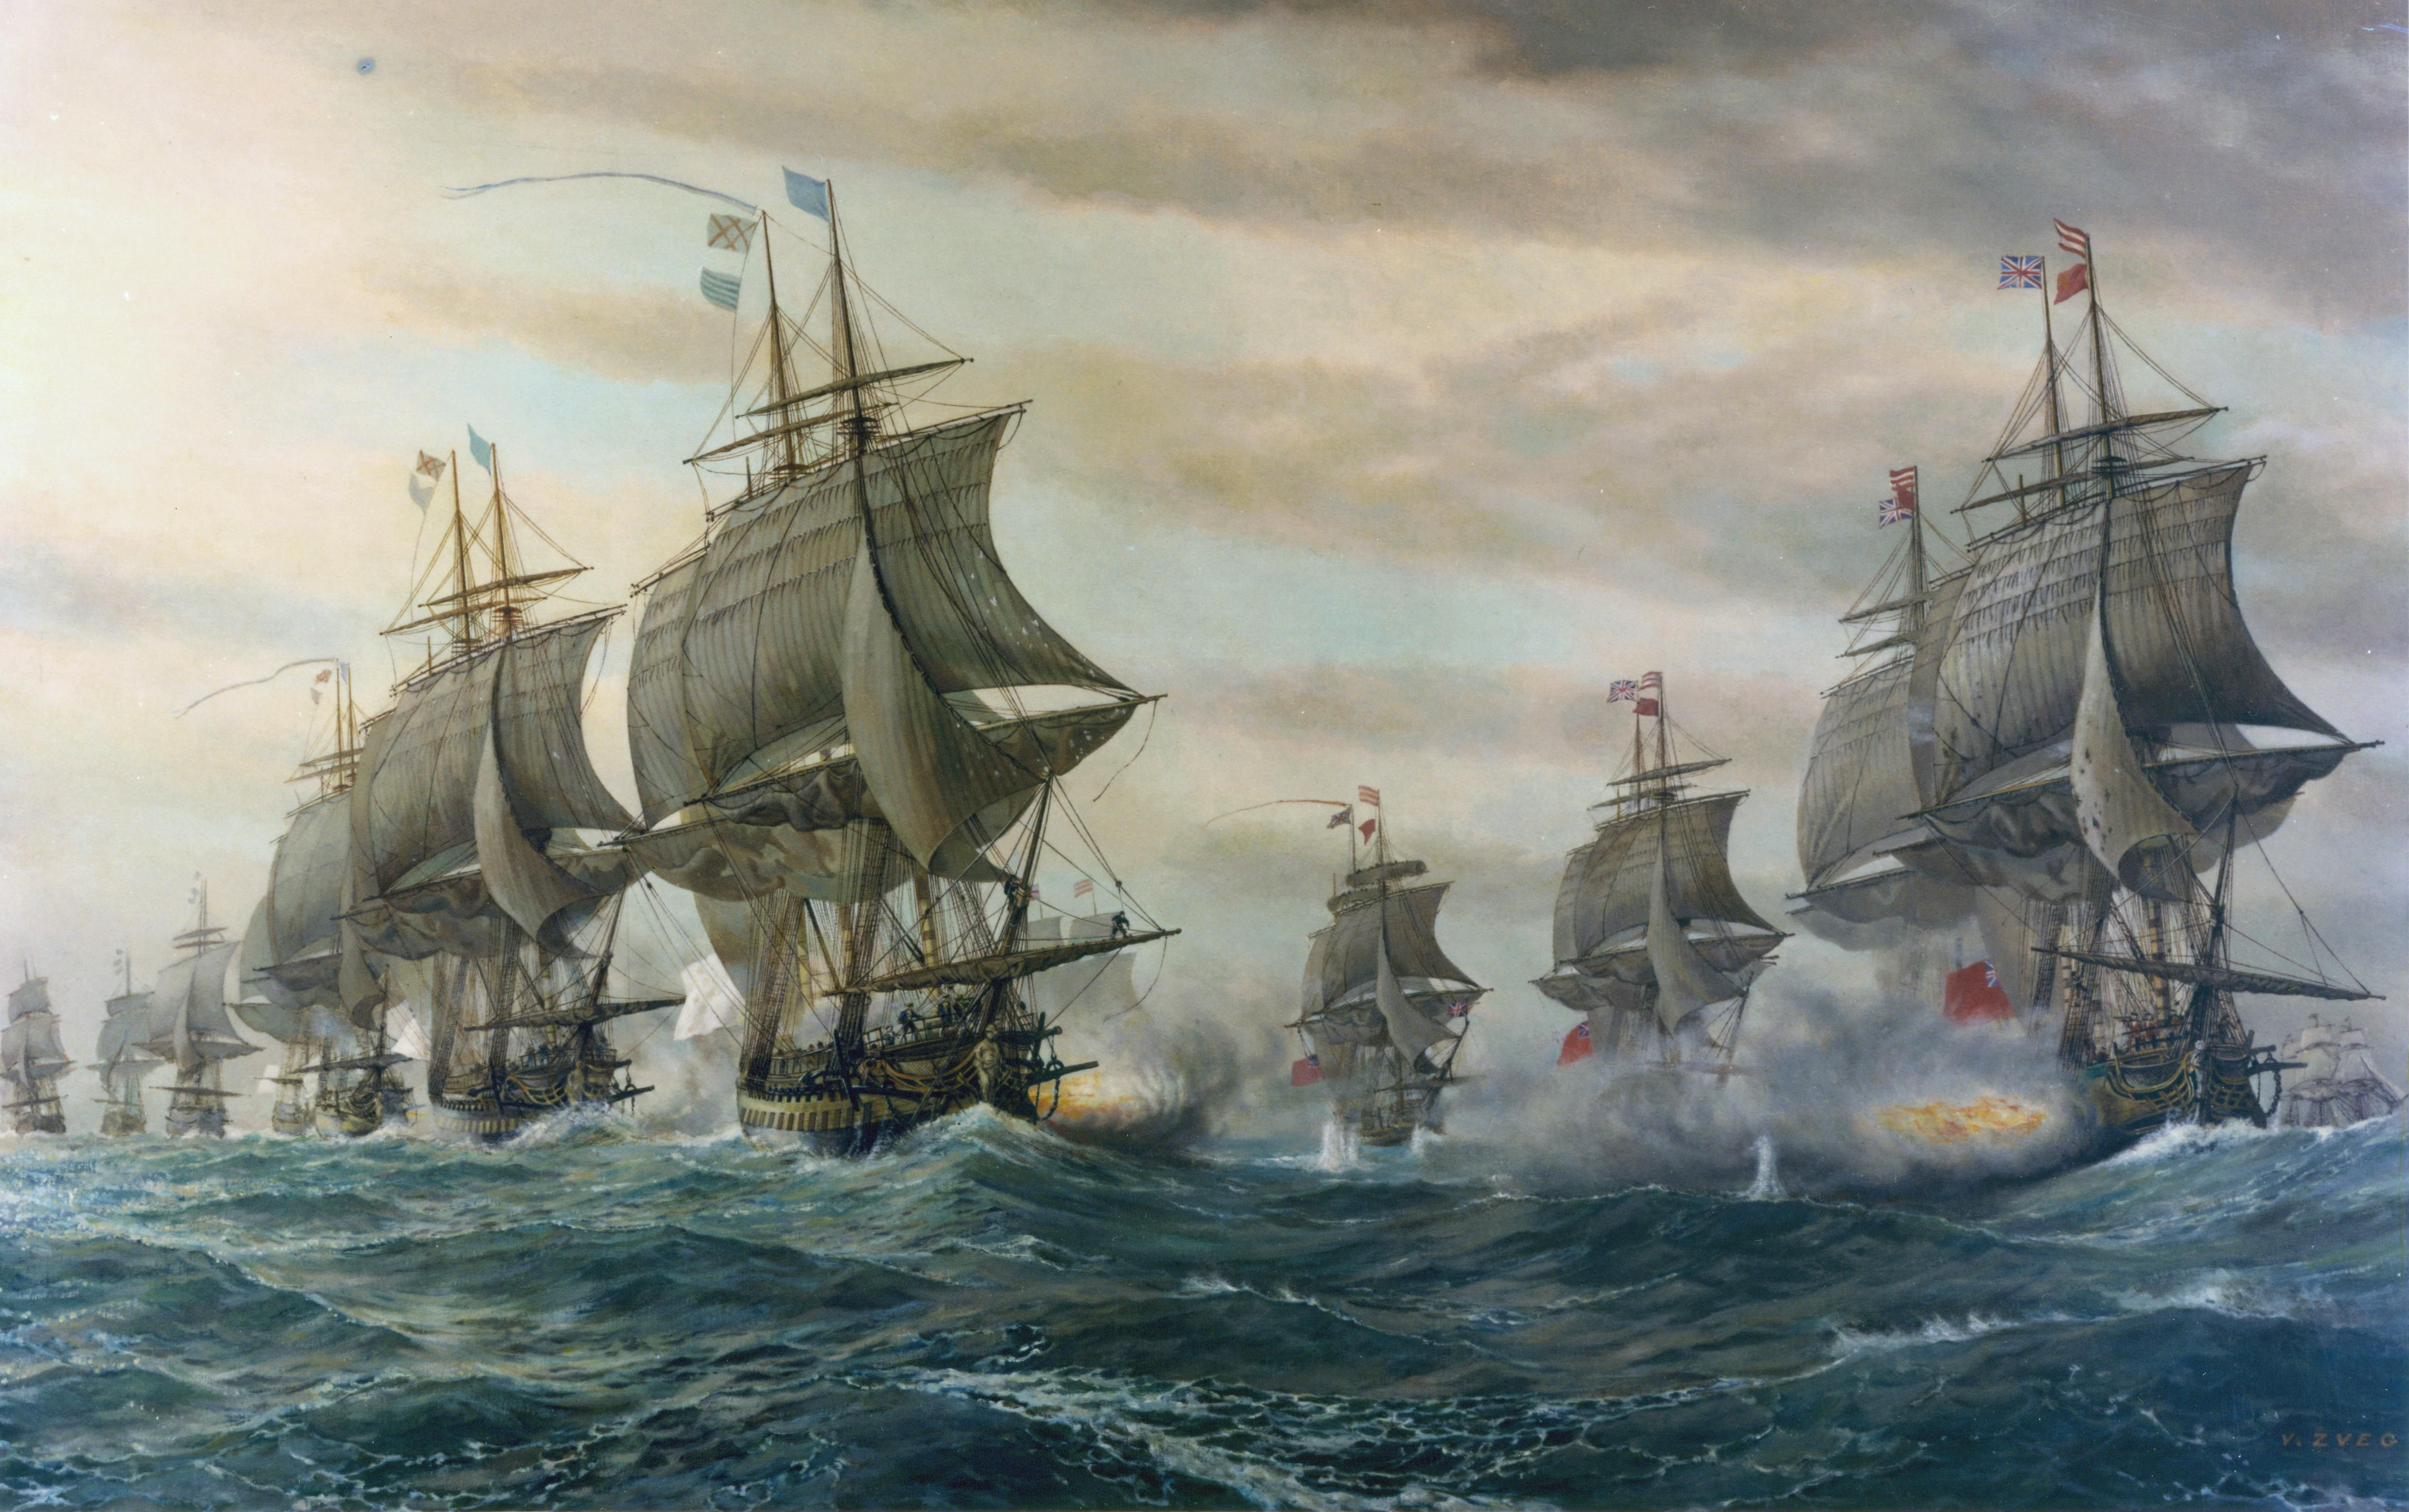 NAVAL BATTLE OF VIRGINIA CAPES PAINTING AMERICAN REVOLUTION WAR ART CANVAS PRINT